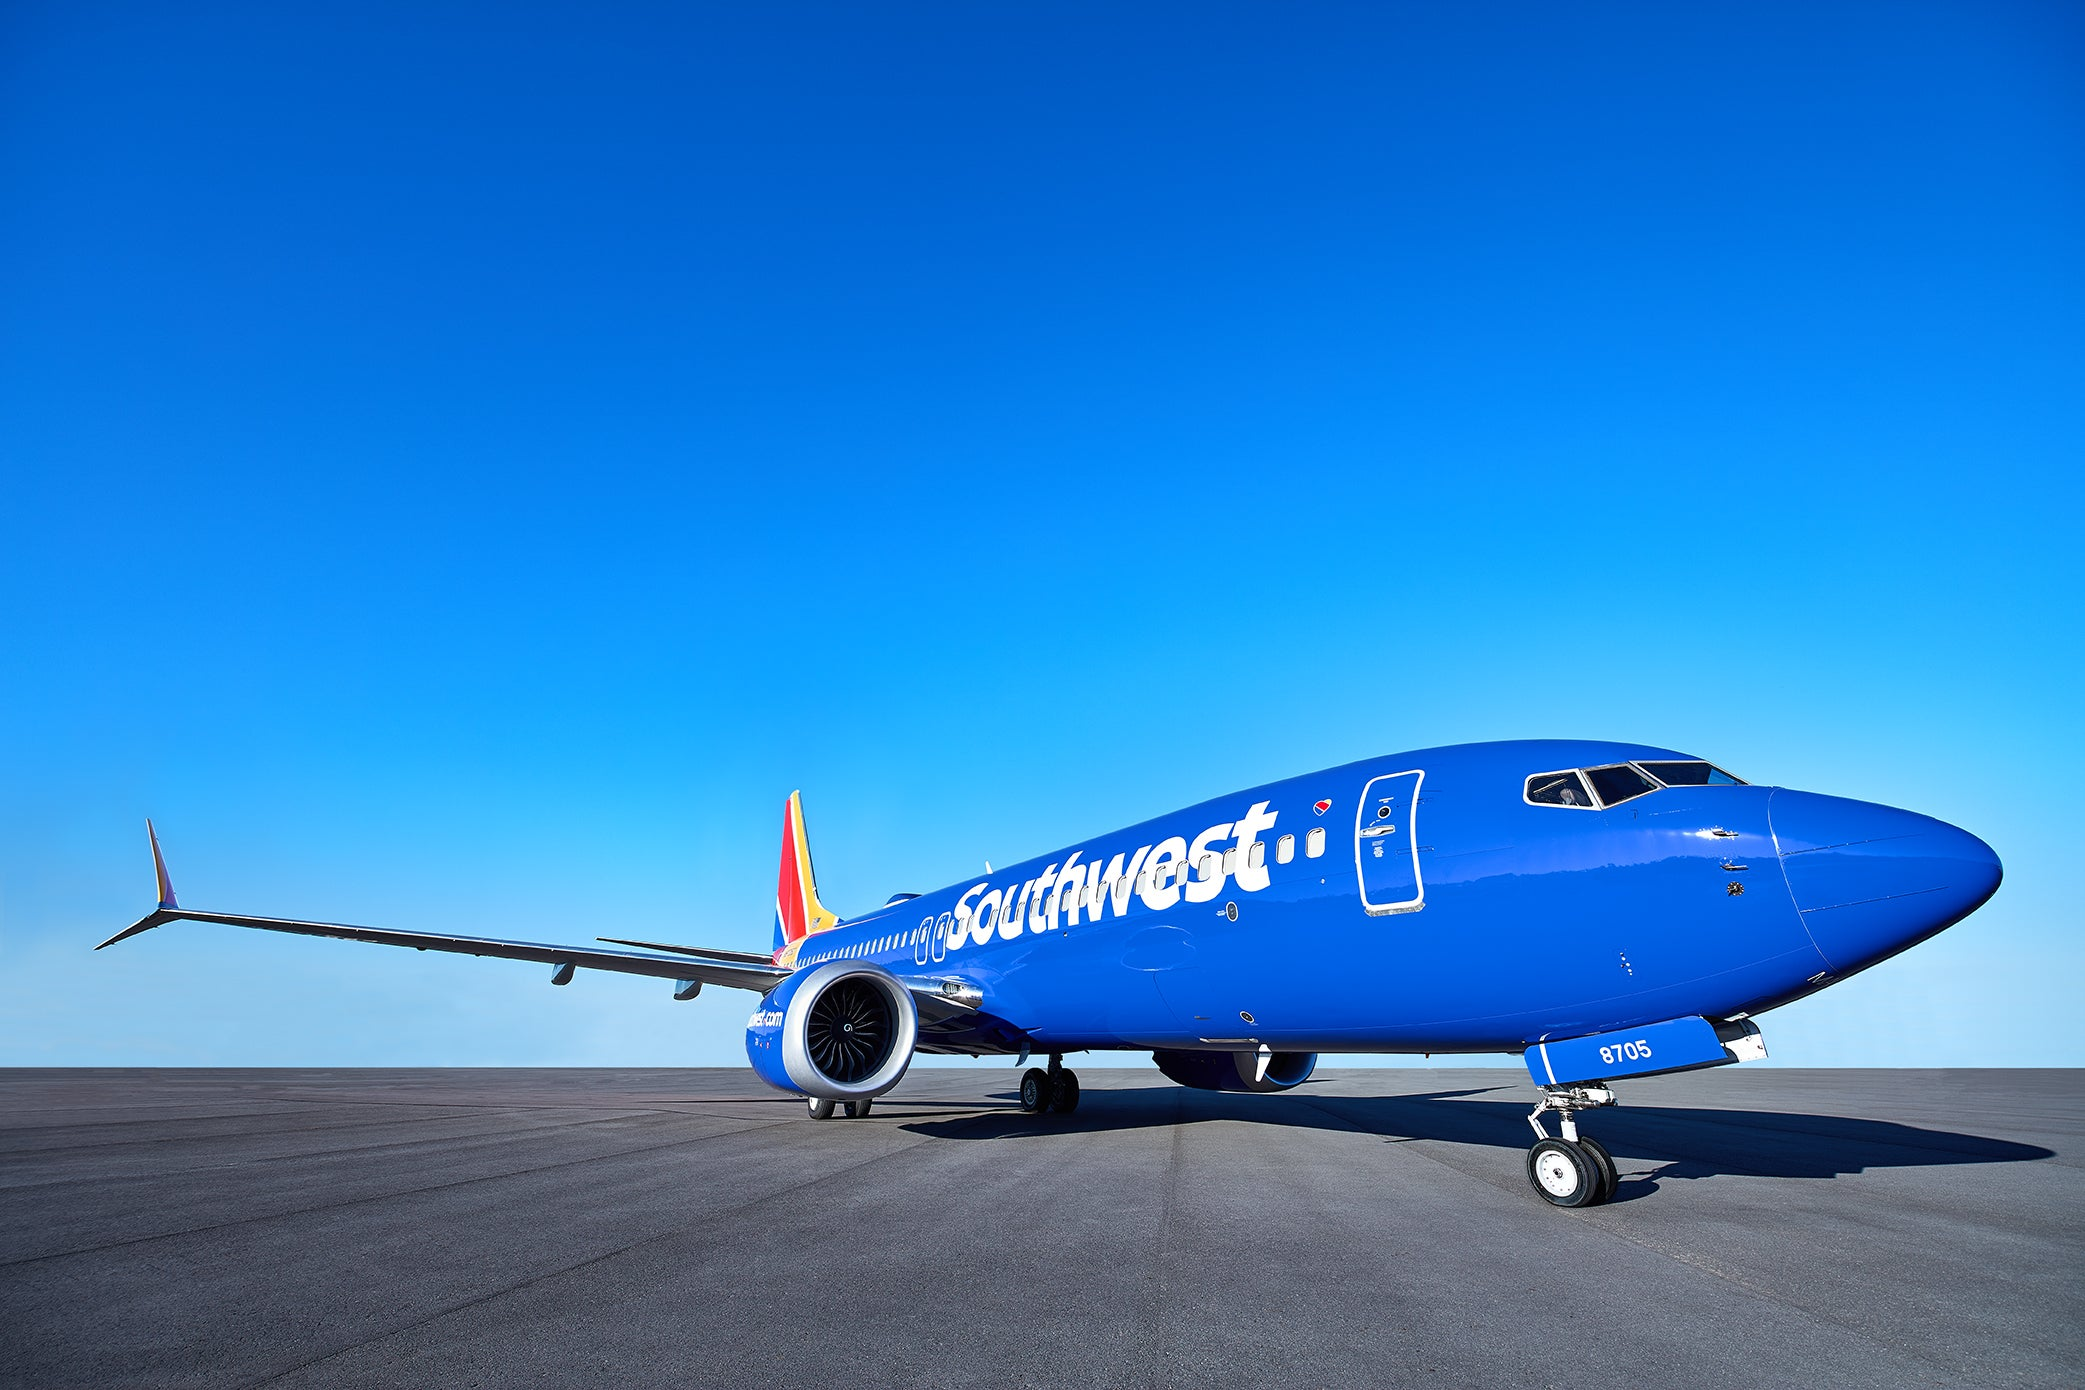 how far in advance can you book a flight on southwest airlines